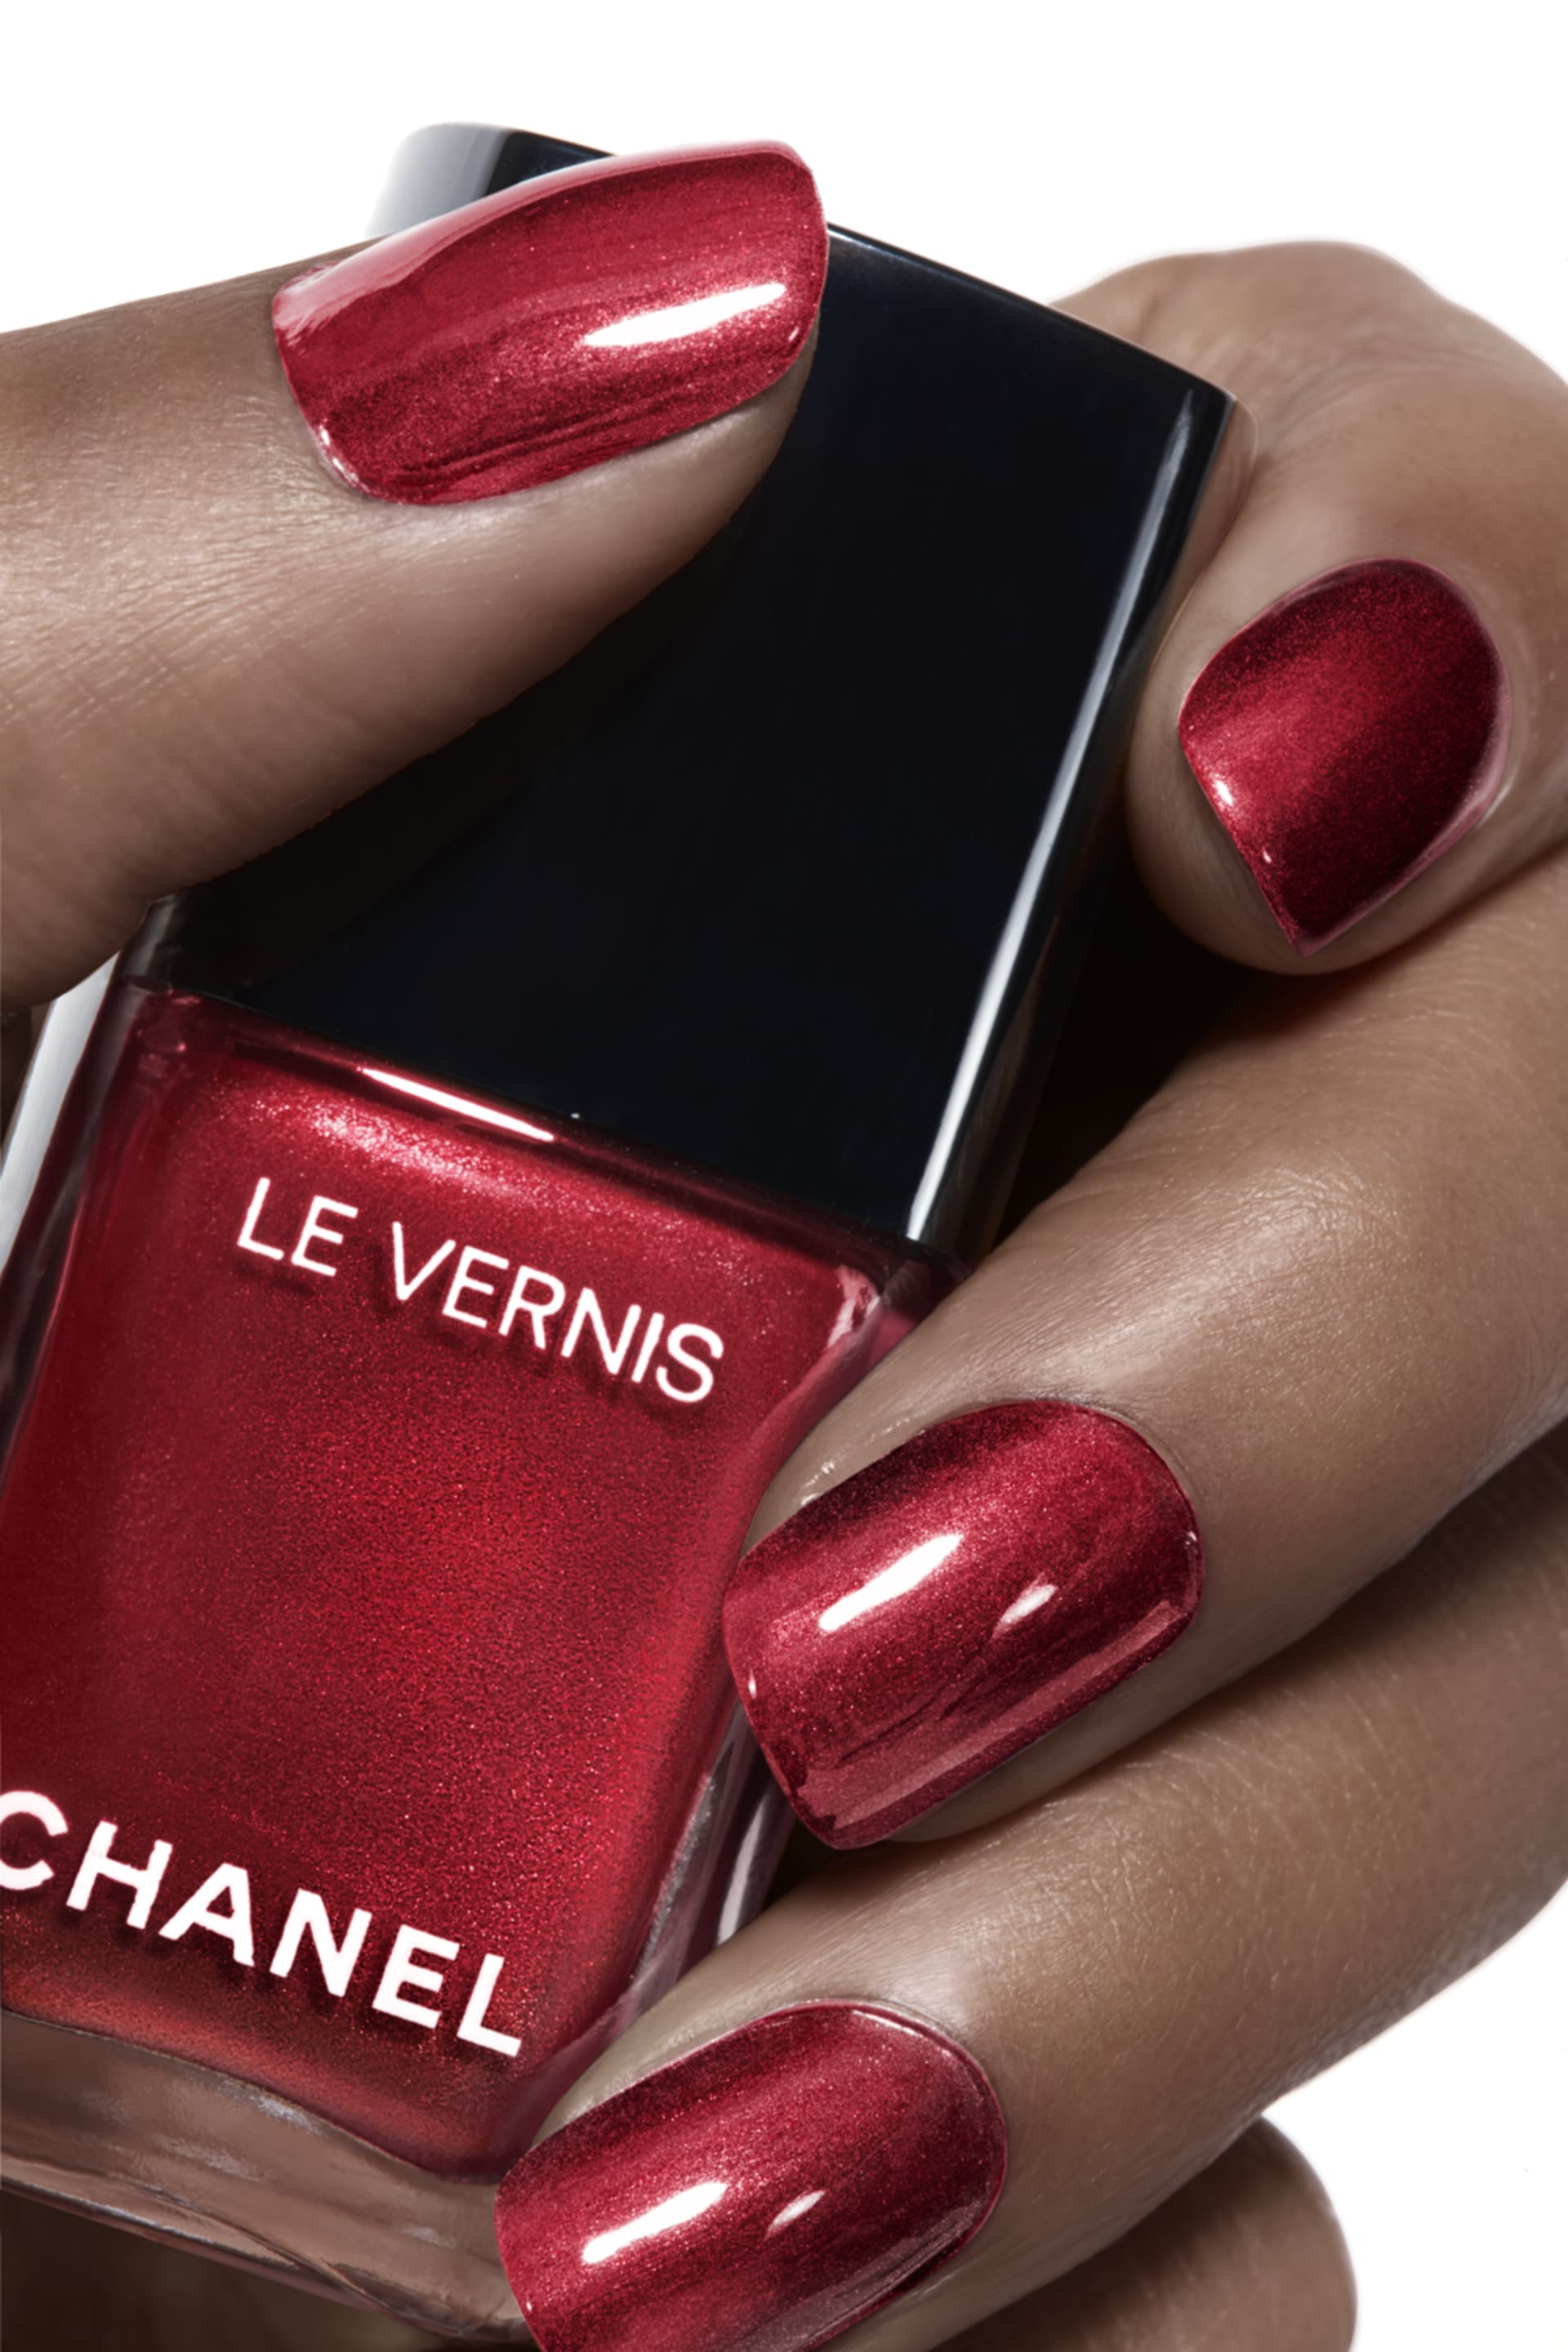 Application makeup visual 1 - LE VERNIS 731 - RADIANT RED